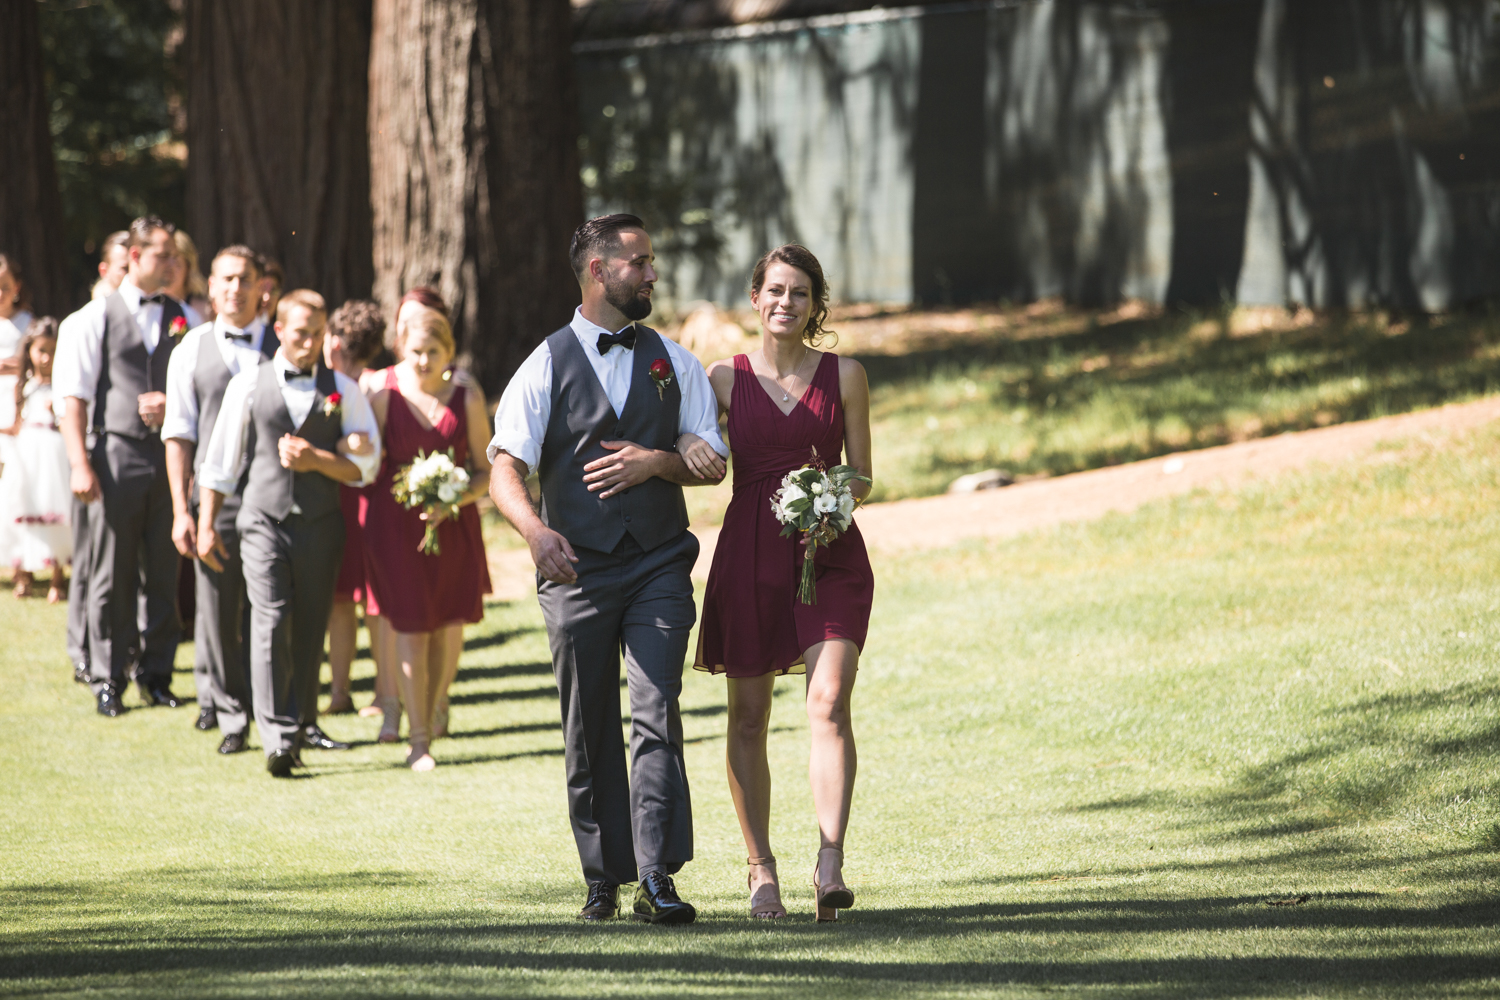 wedding-processional-sequoia-woods-country-club.jpg